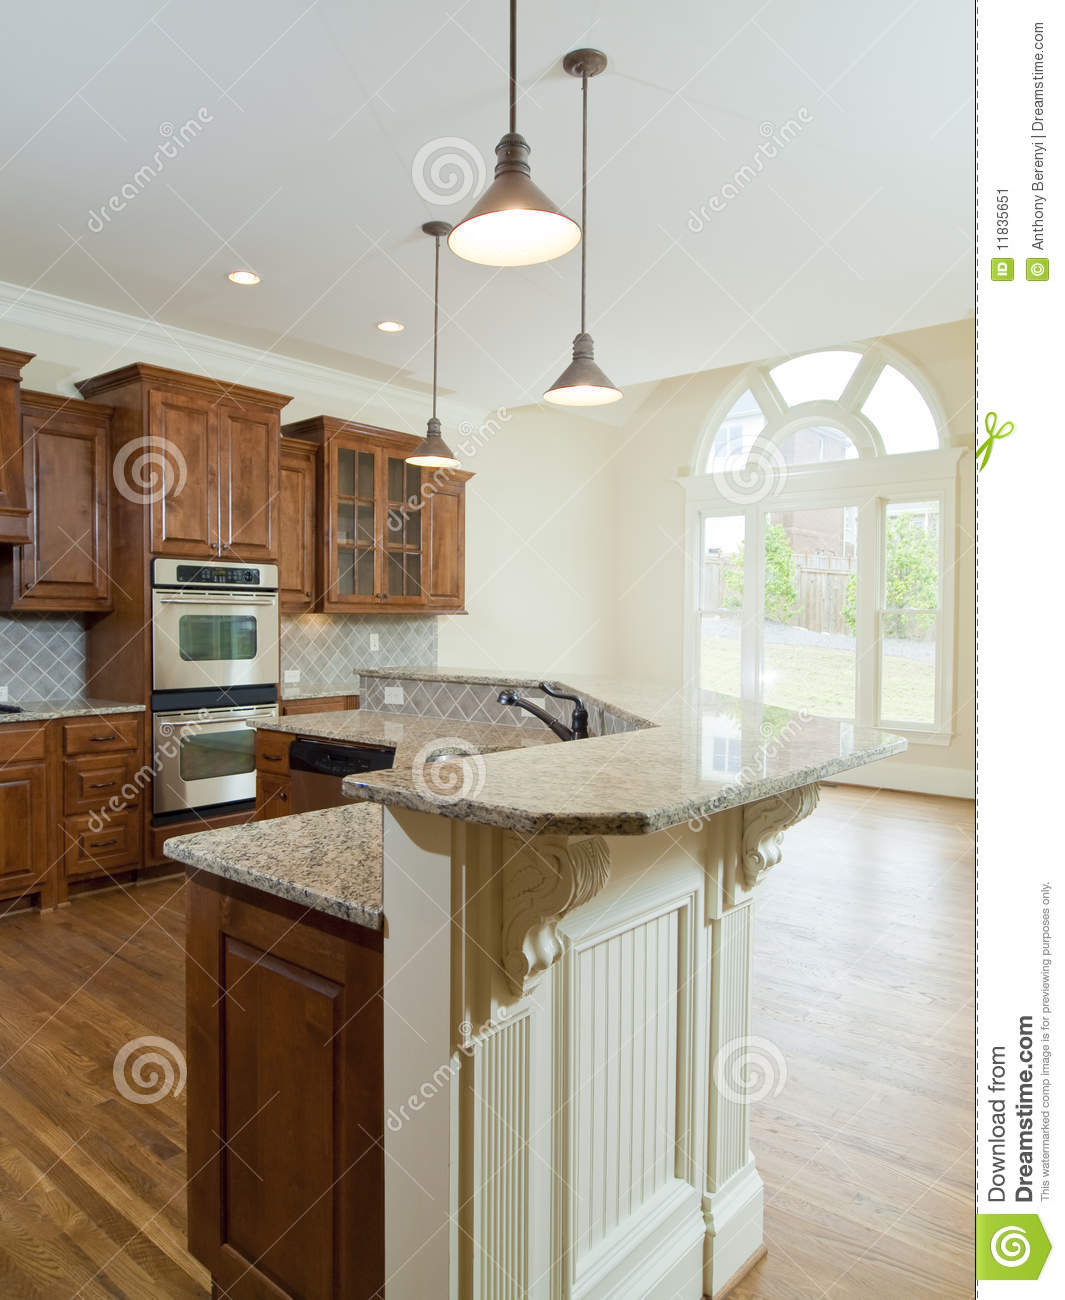 Model luxury home interior kitchen counter stock image image 11835651 for Interieur maison de luxe